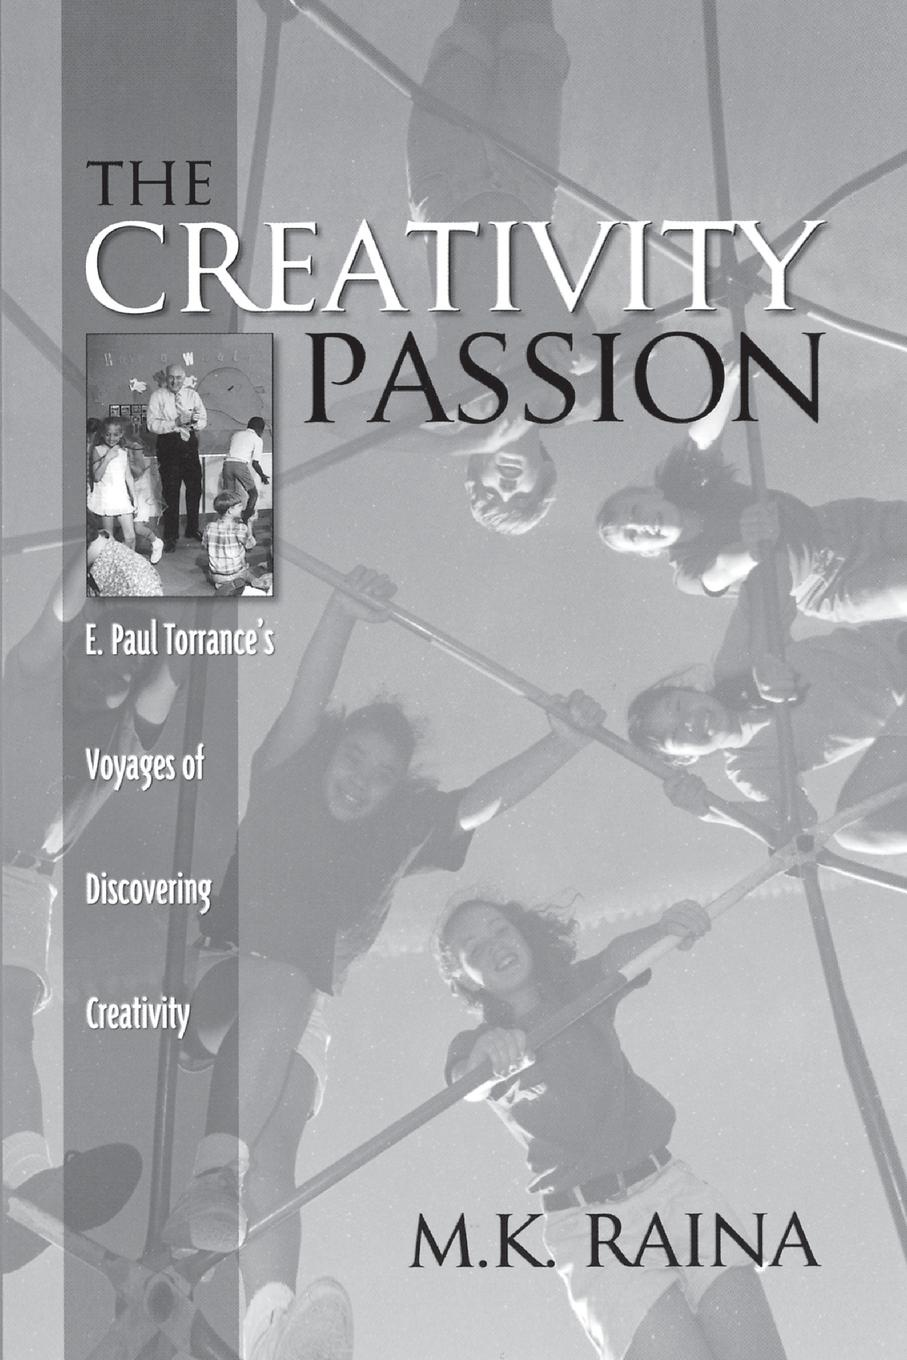 M. Raina The Creativity Passion. E. Paul Torrance's Voyages of Discovering Creativity assessing creativity